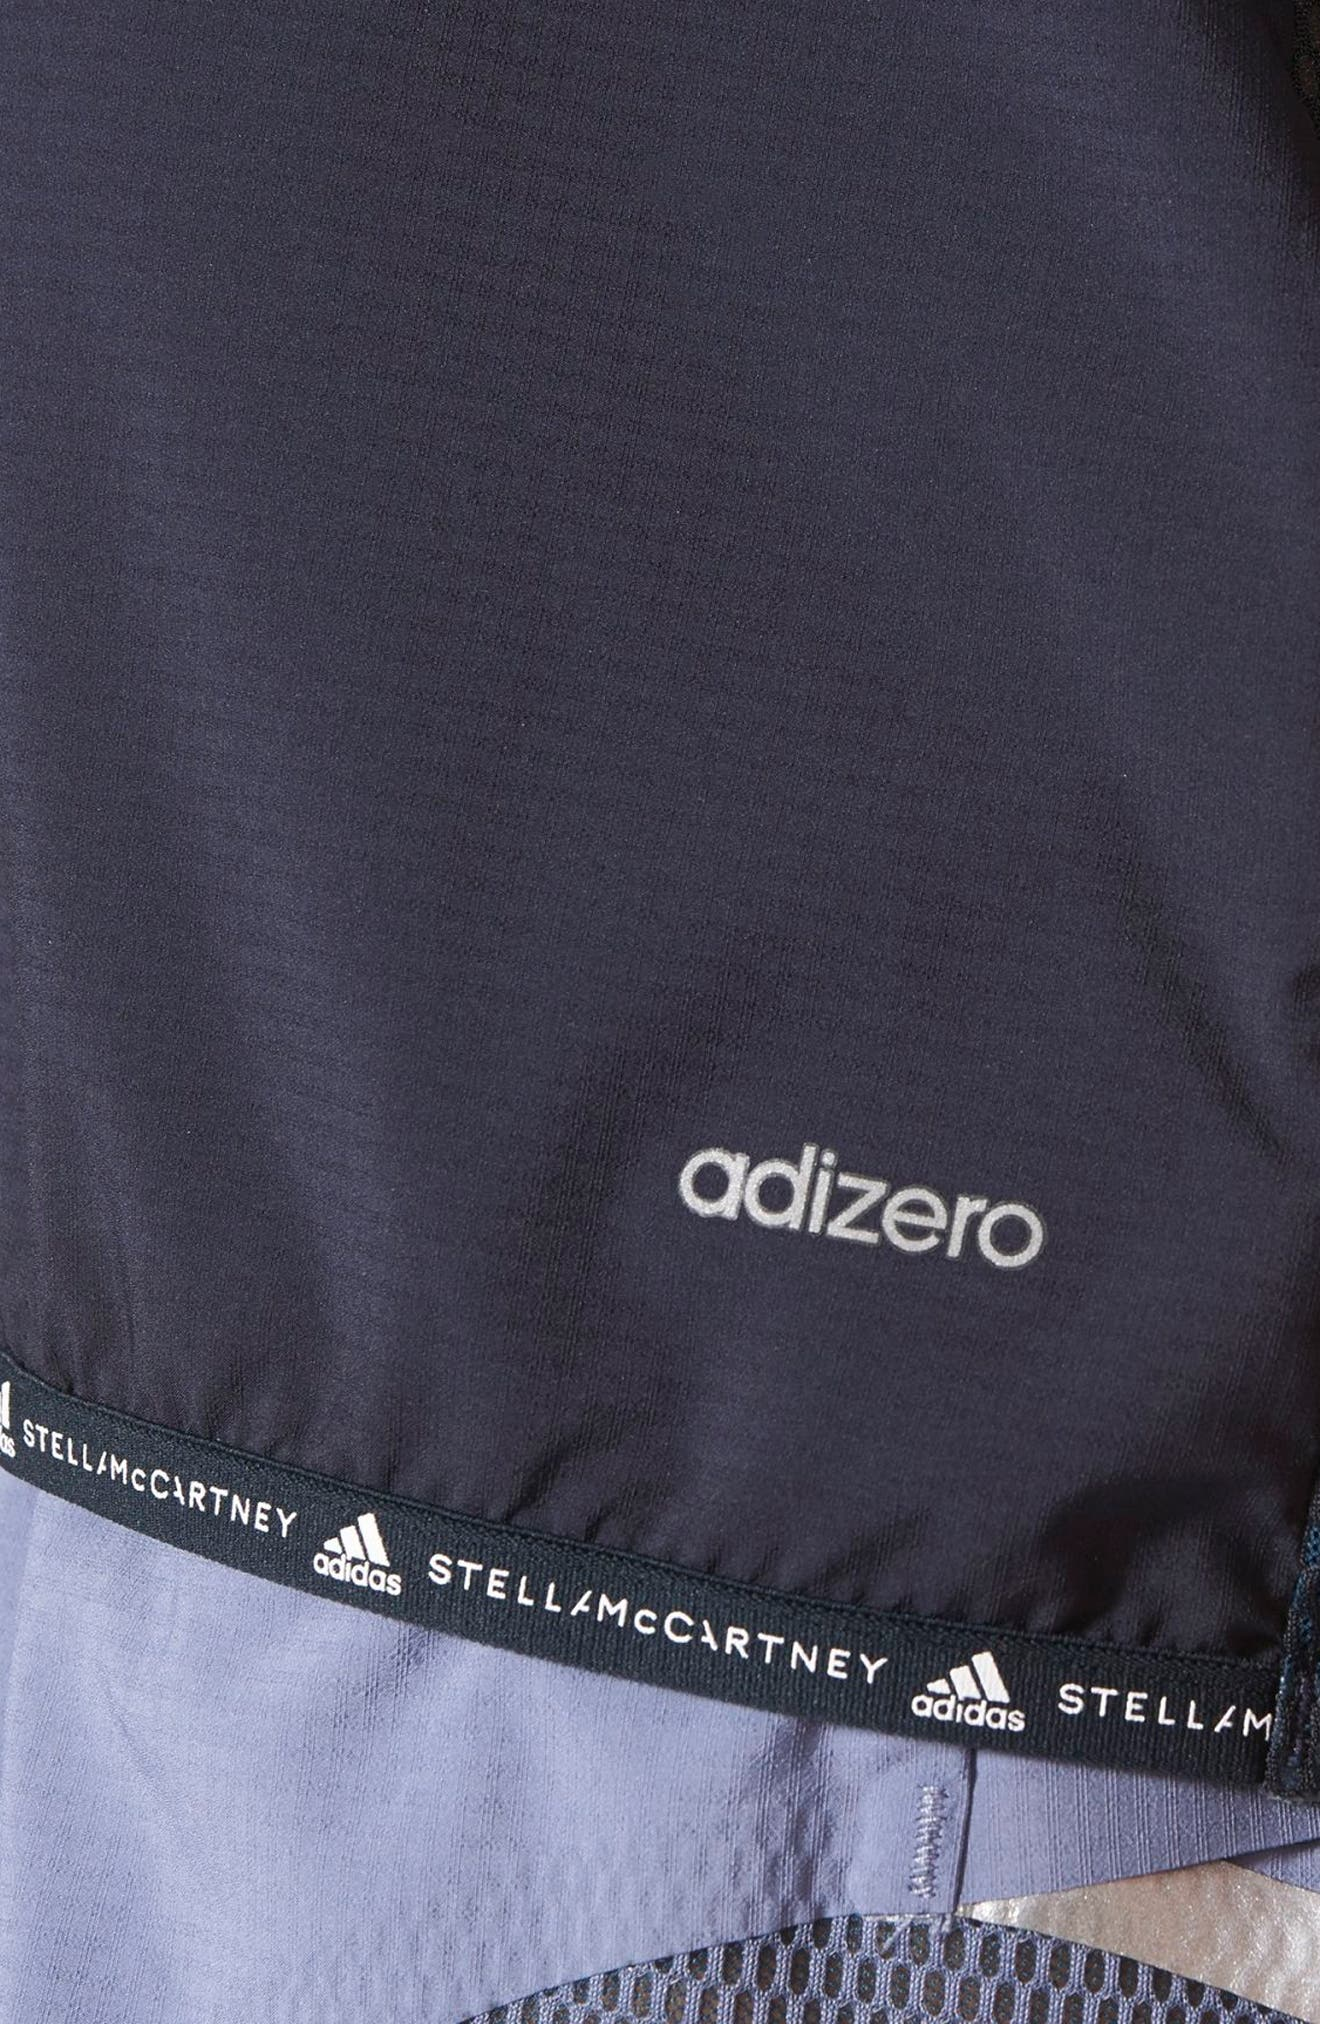 Adizero Running Tank,                             Alternate thumbnail 5, color,                             400